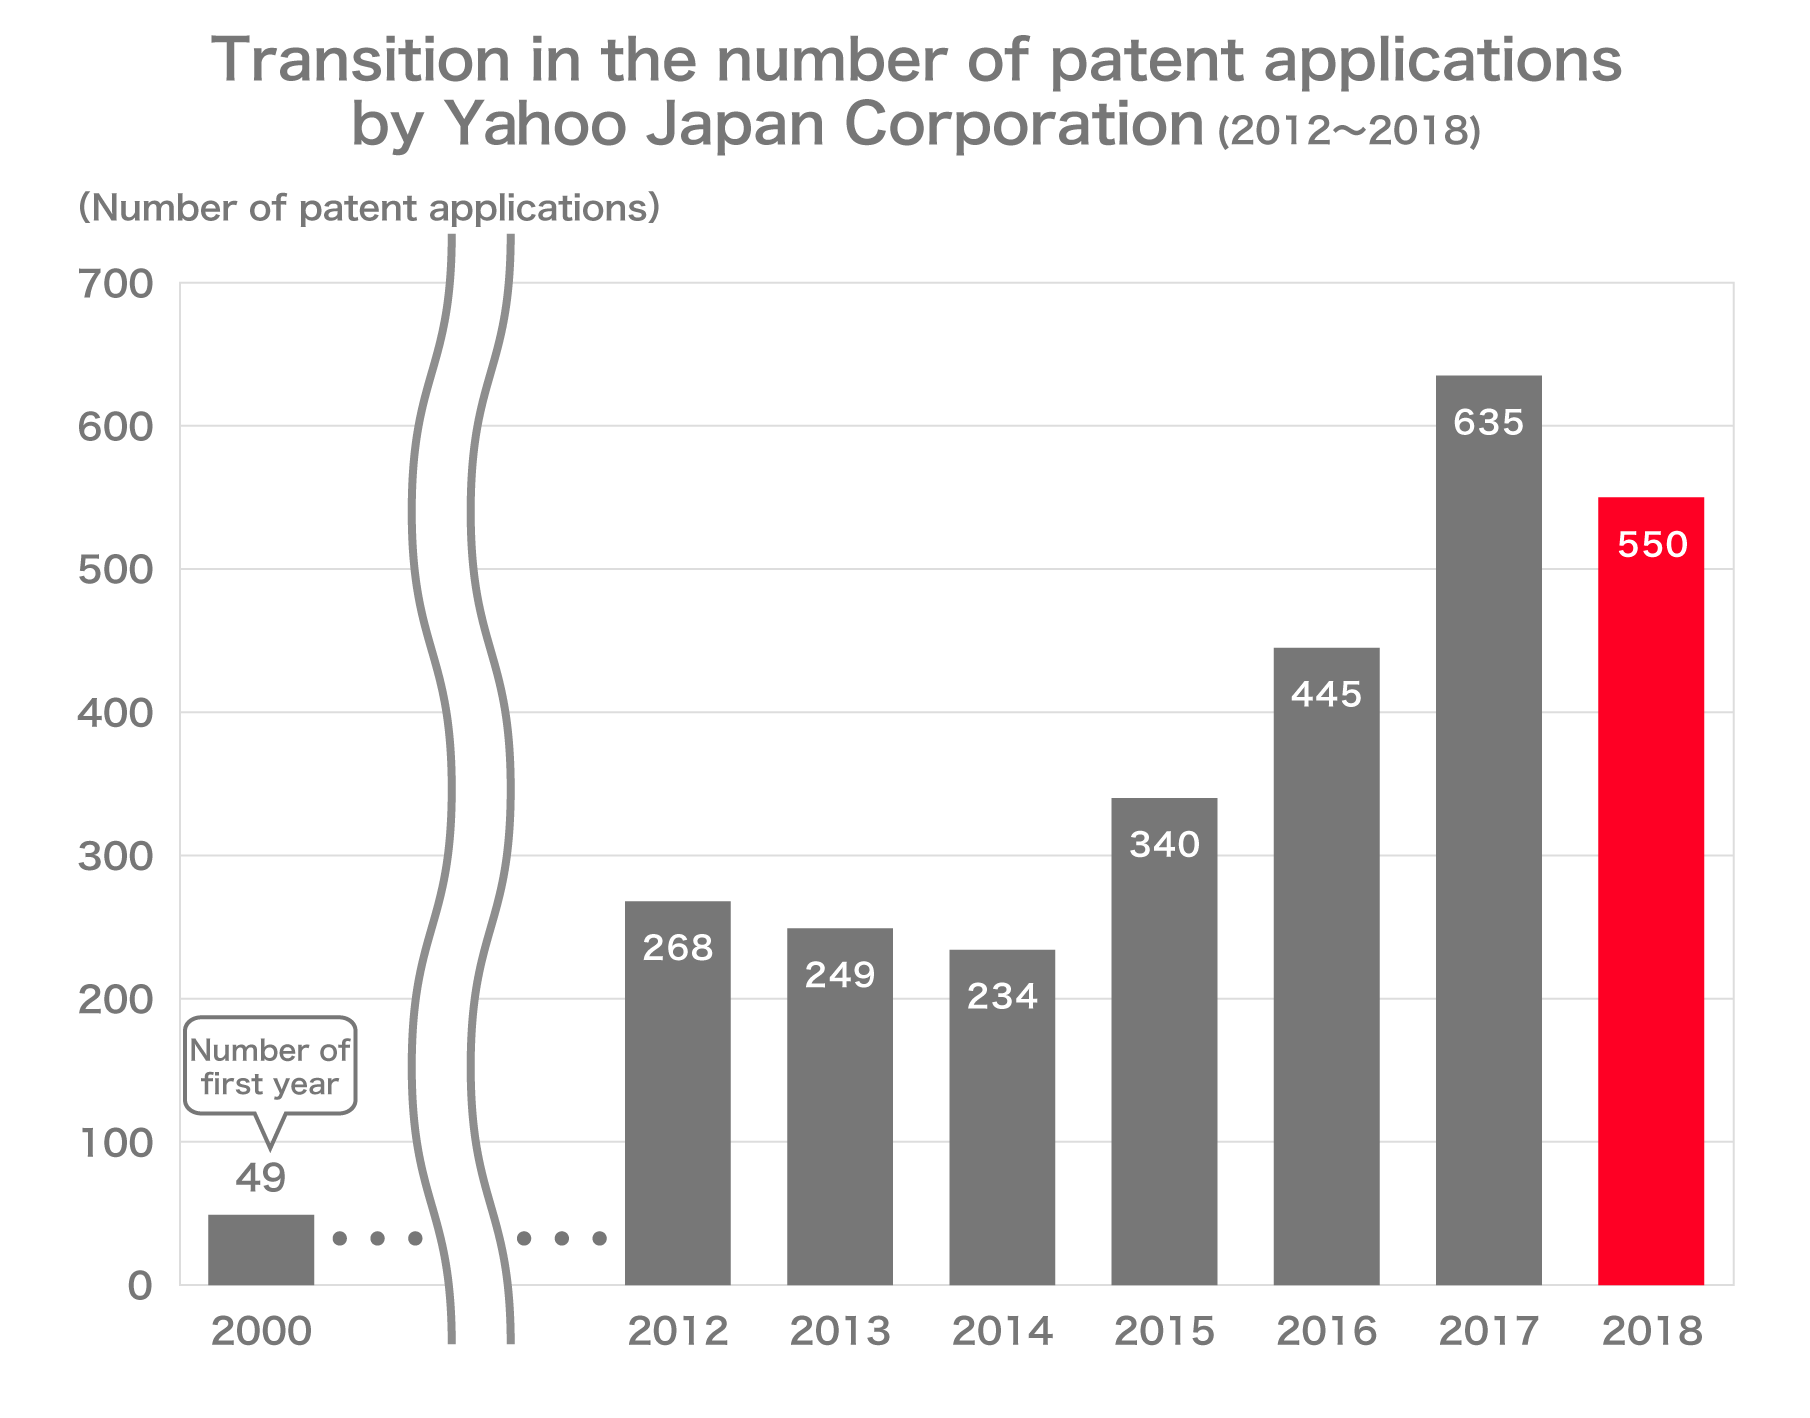 Transition in the number of patent applications by Yahoo Japan Corporation(2012~2018), FY2000:49, FY2012:268, FY2013:249, FY2014:234, FY2015:340, FY2016:445, FY2017:635, FY2018:550